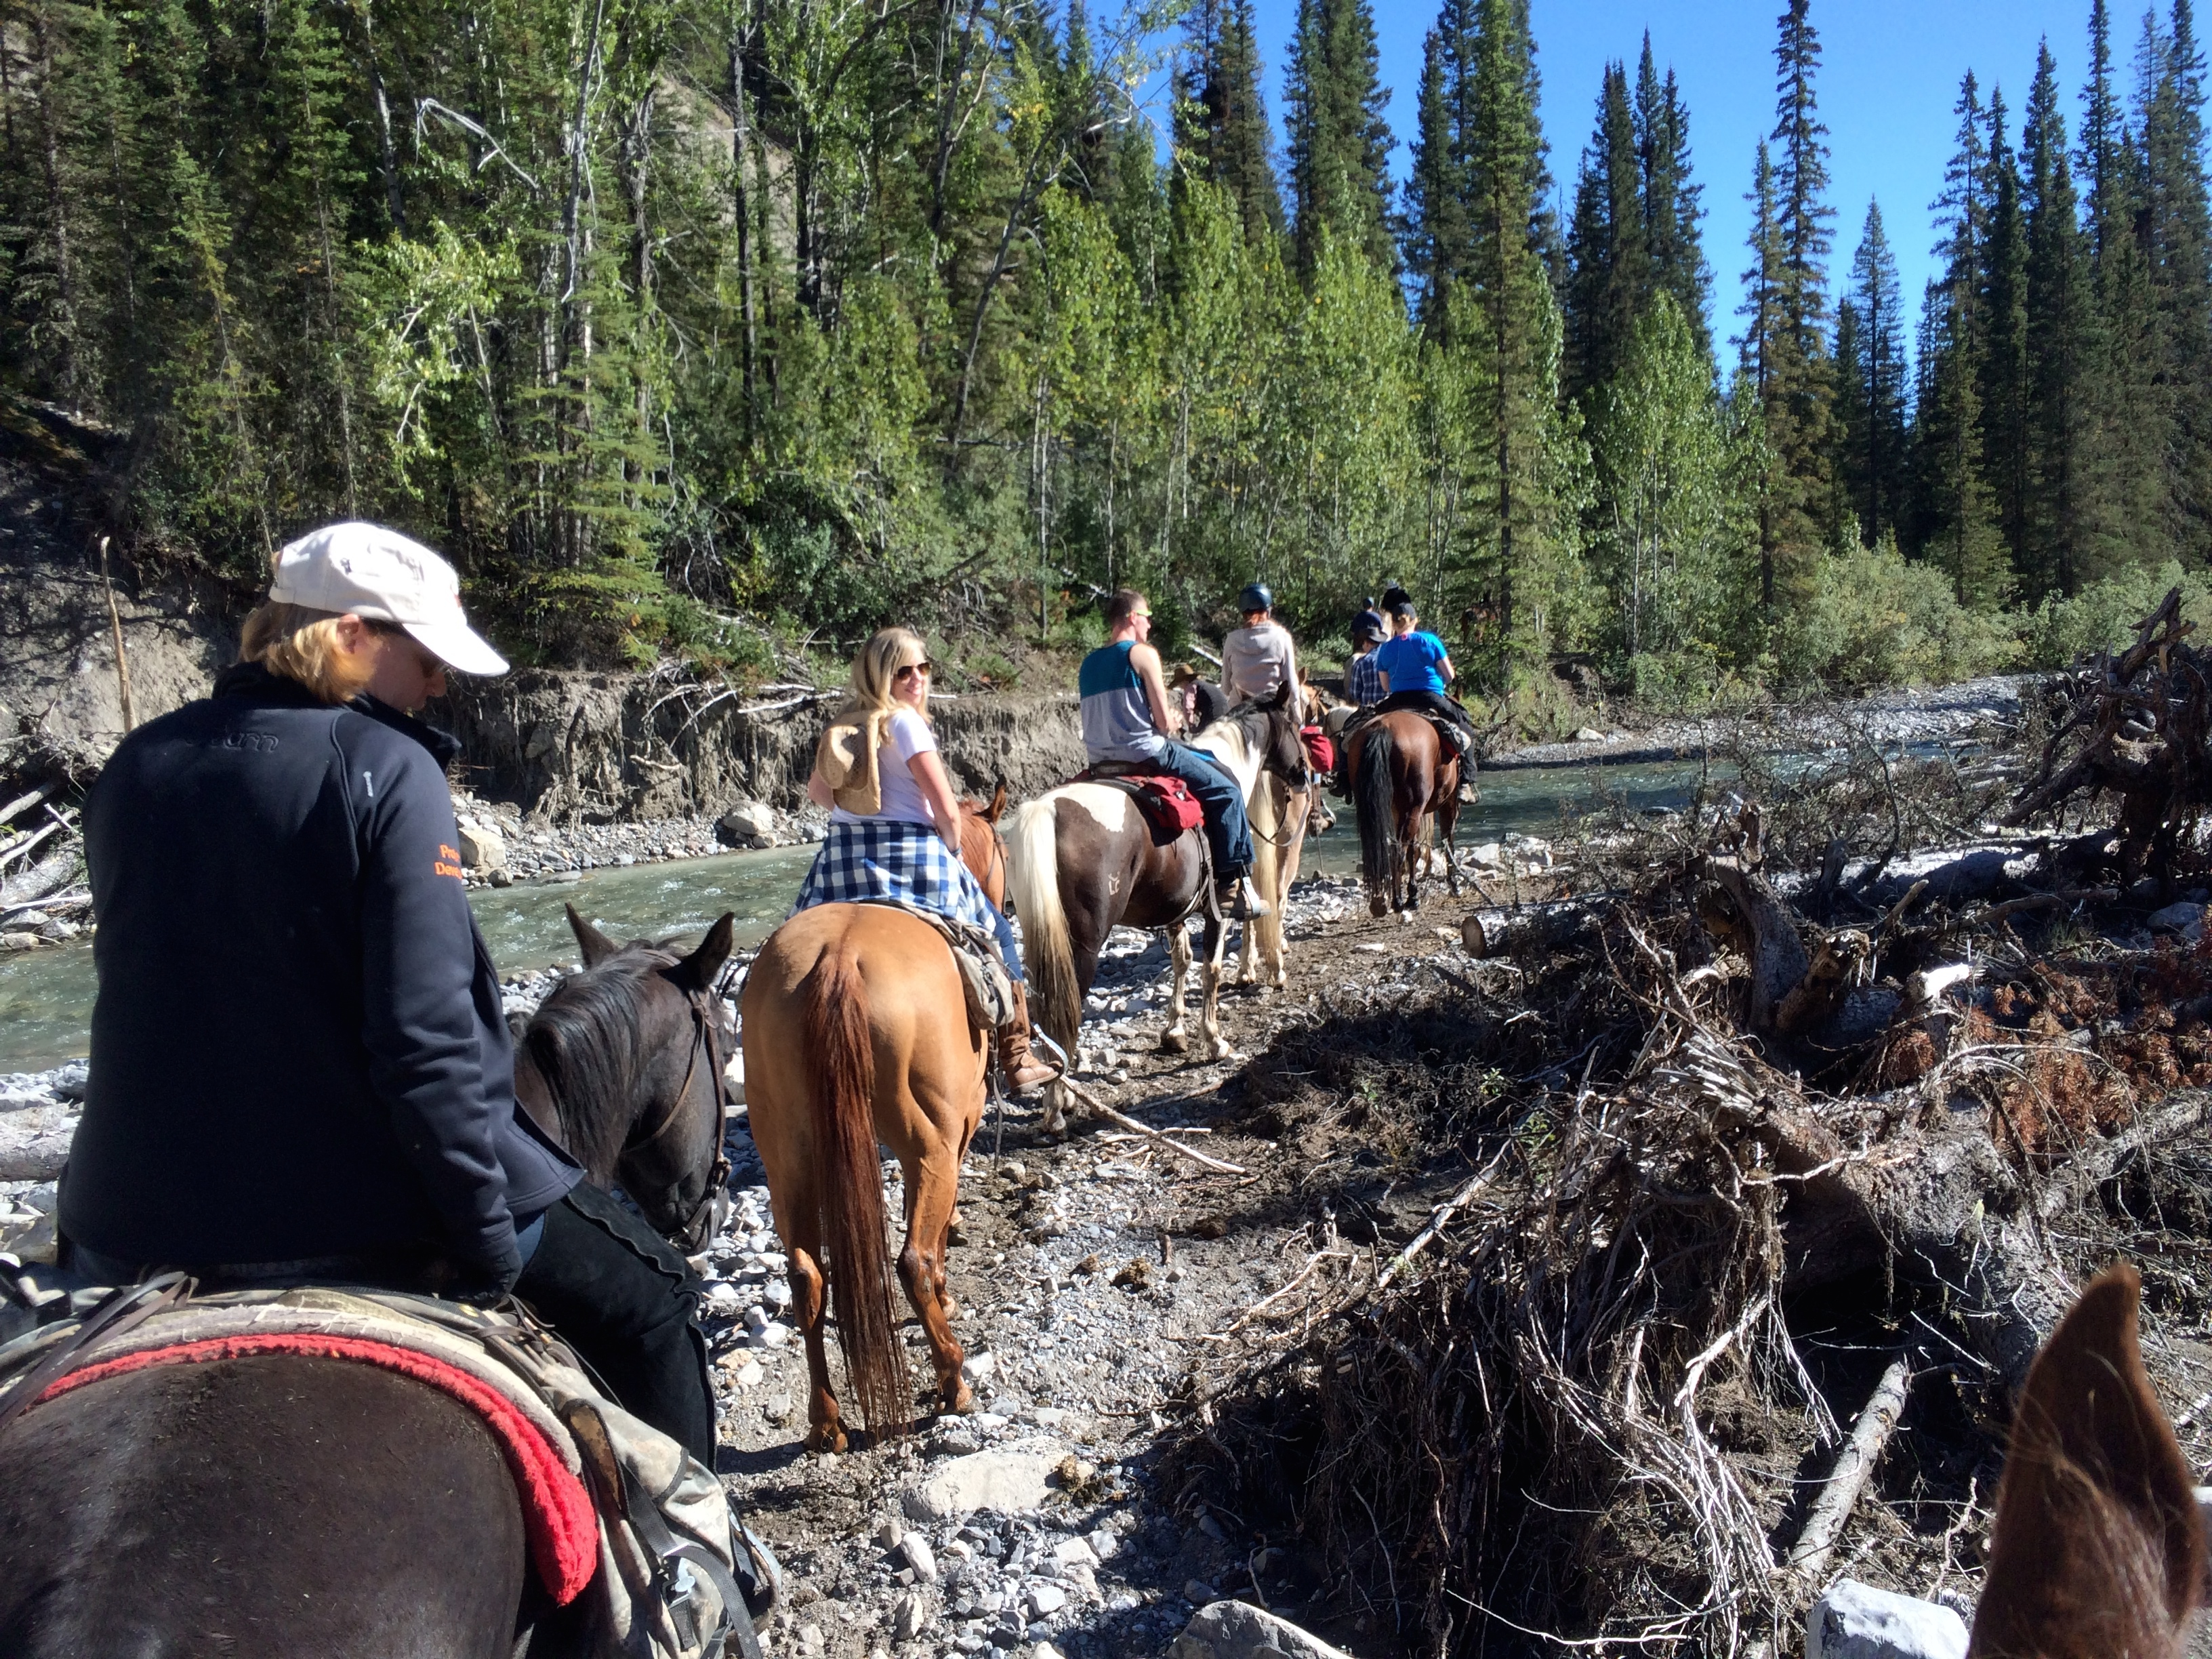 Travel: A holiday on horseback turns into much more!